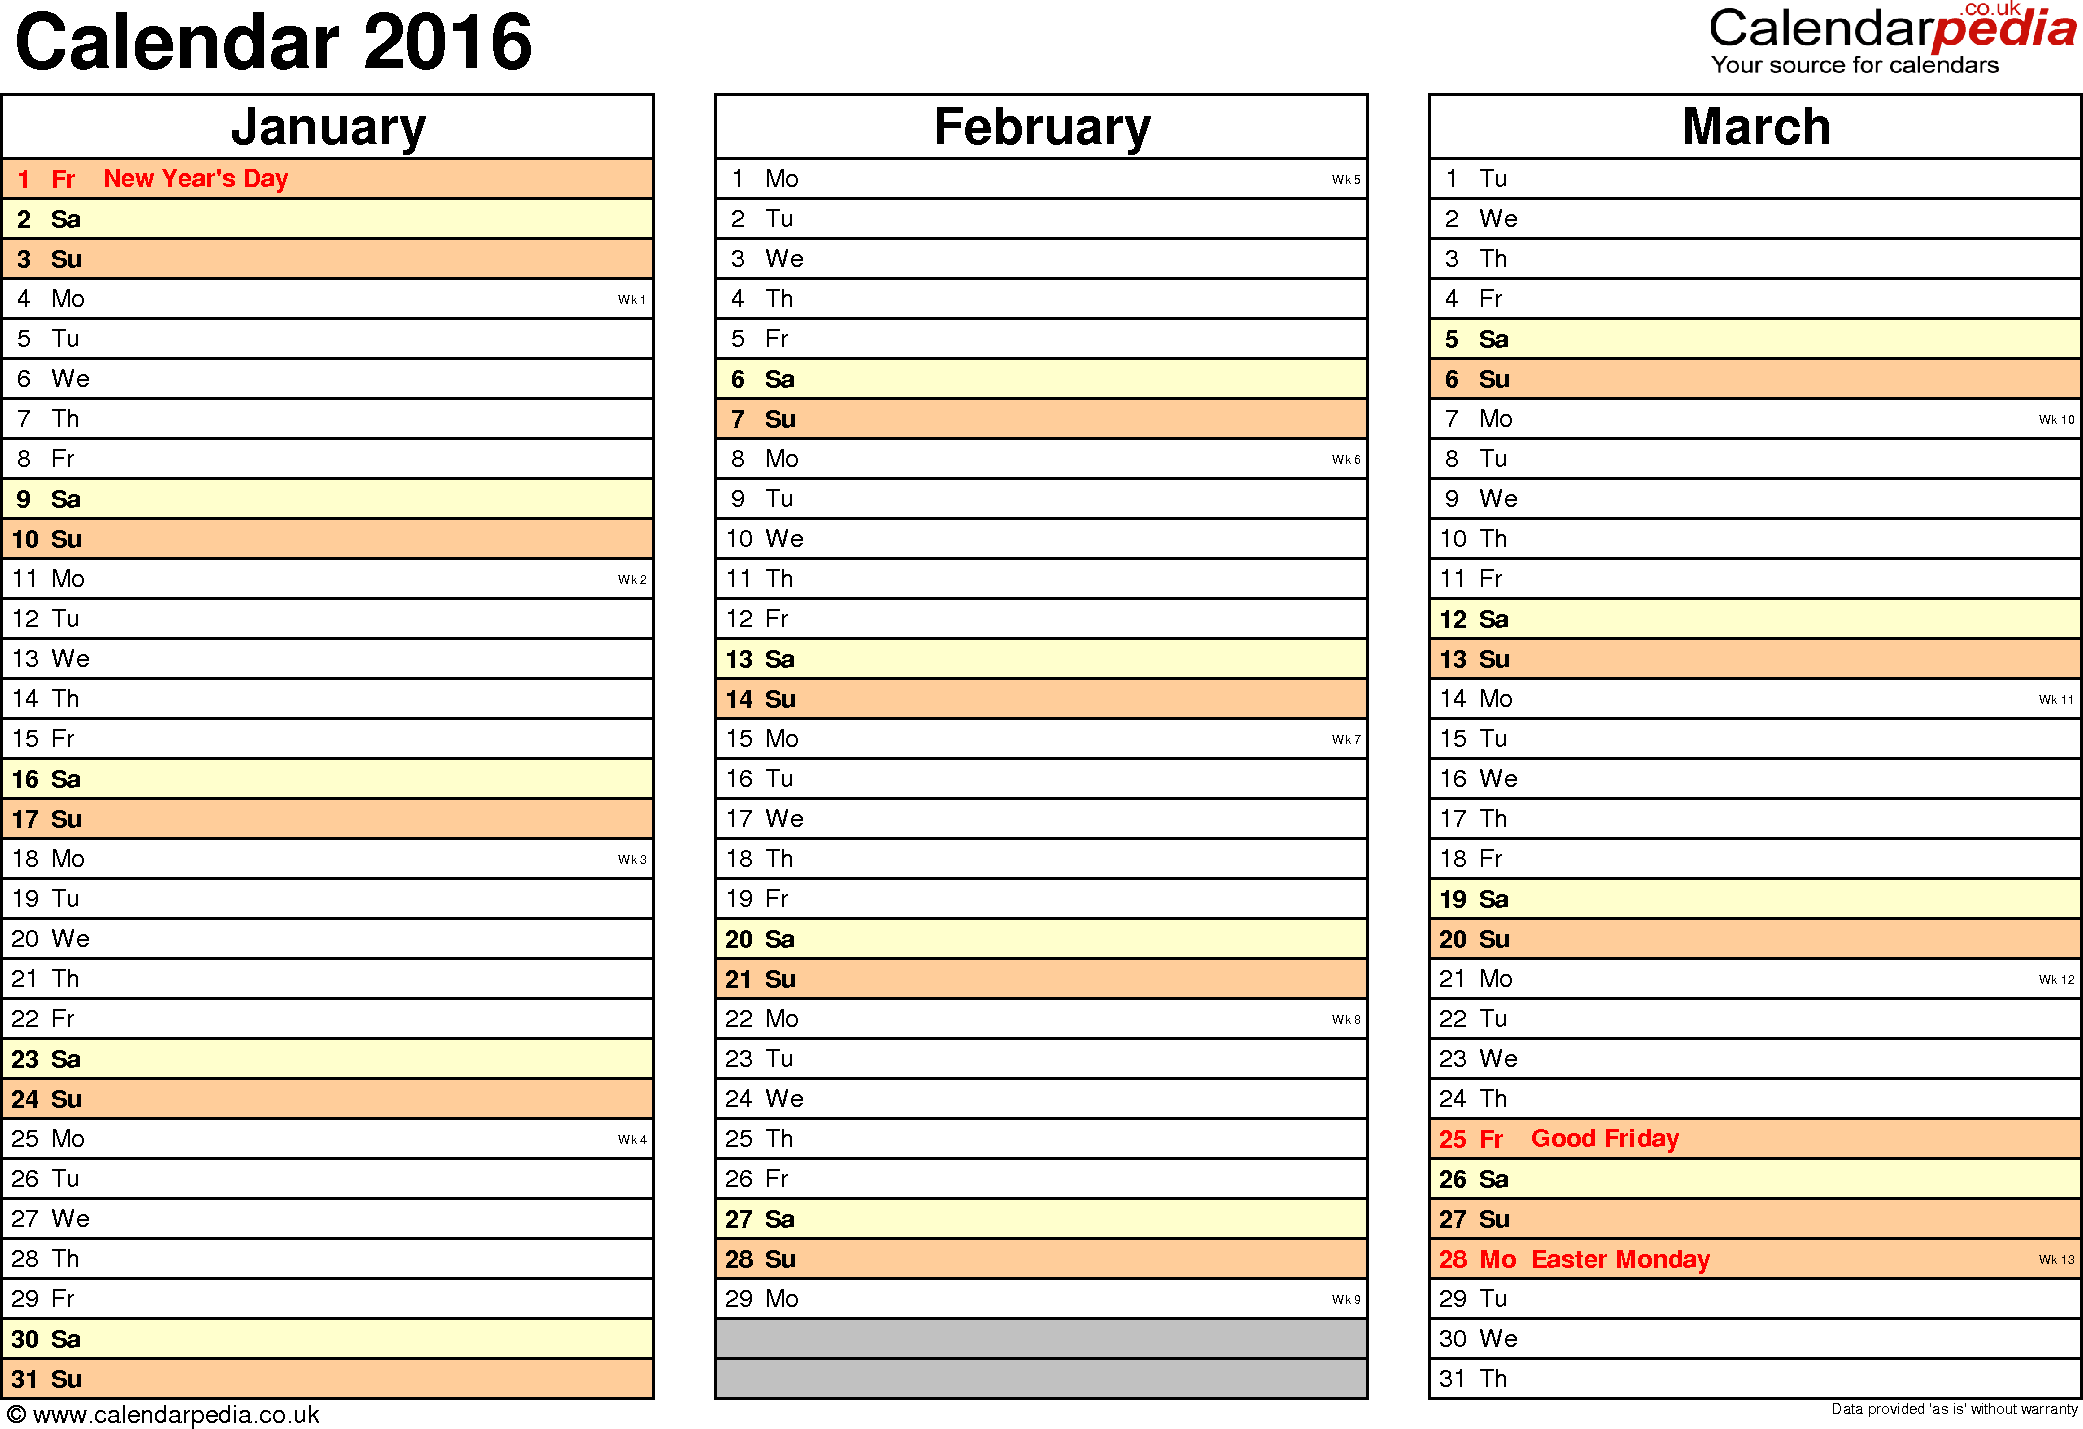 Template 5: Yearly calendar 2016 as Excel template, landscape orientation, 4 pages, months horizontally, days vertically, with UK bank holidays and week numbers